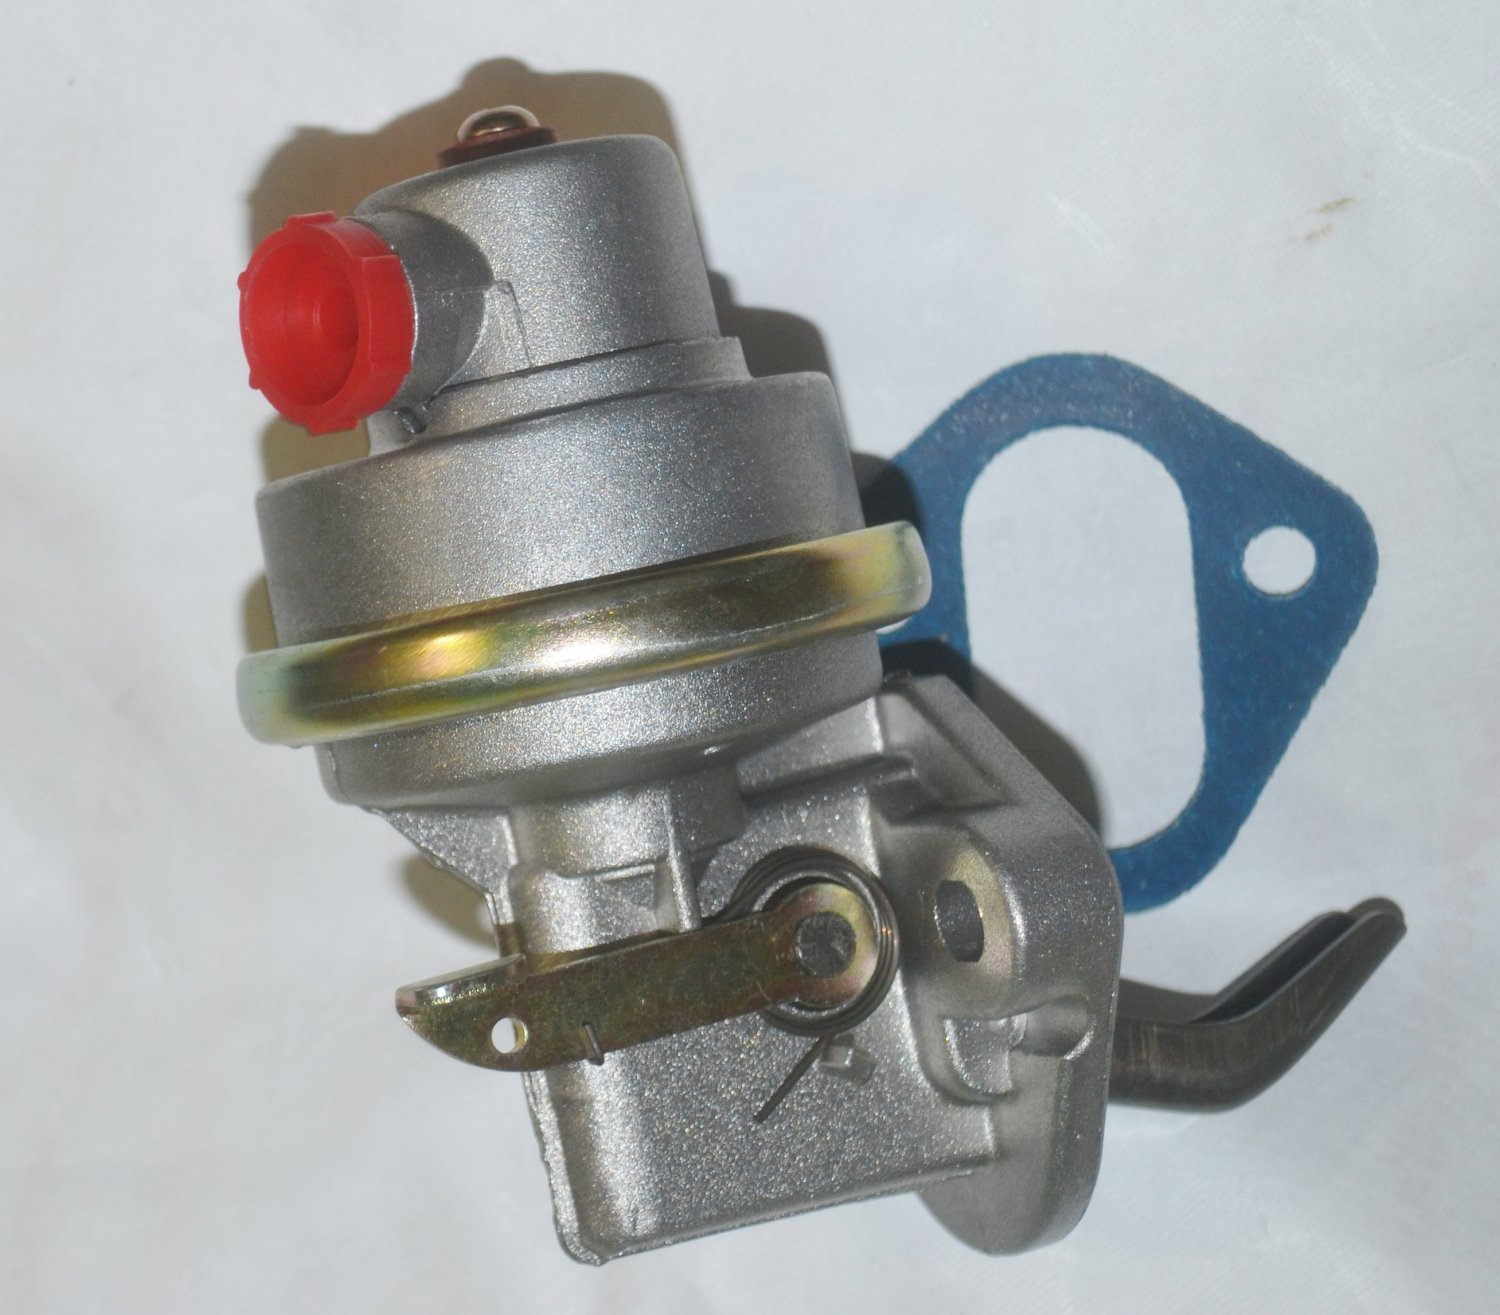 FUEL LIFT PUMP DODGE DIESEL 5.9L 1993 1992 1991 1990 1989